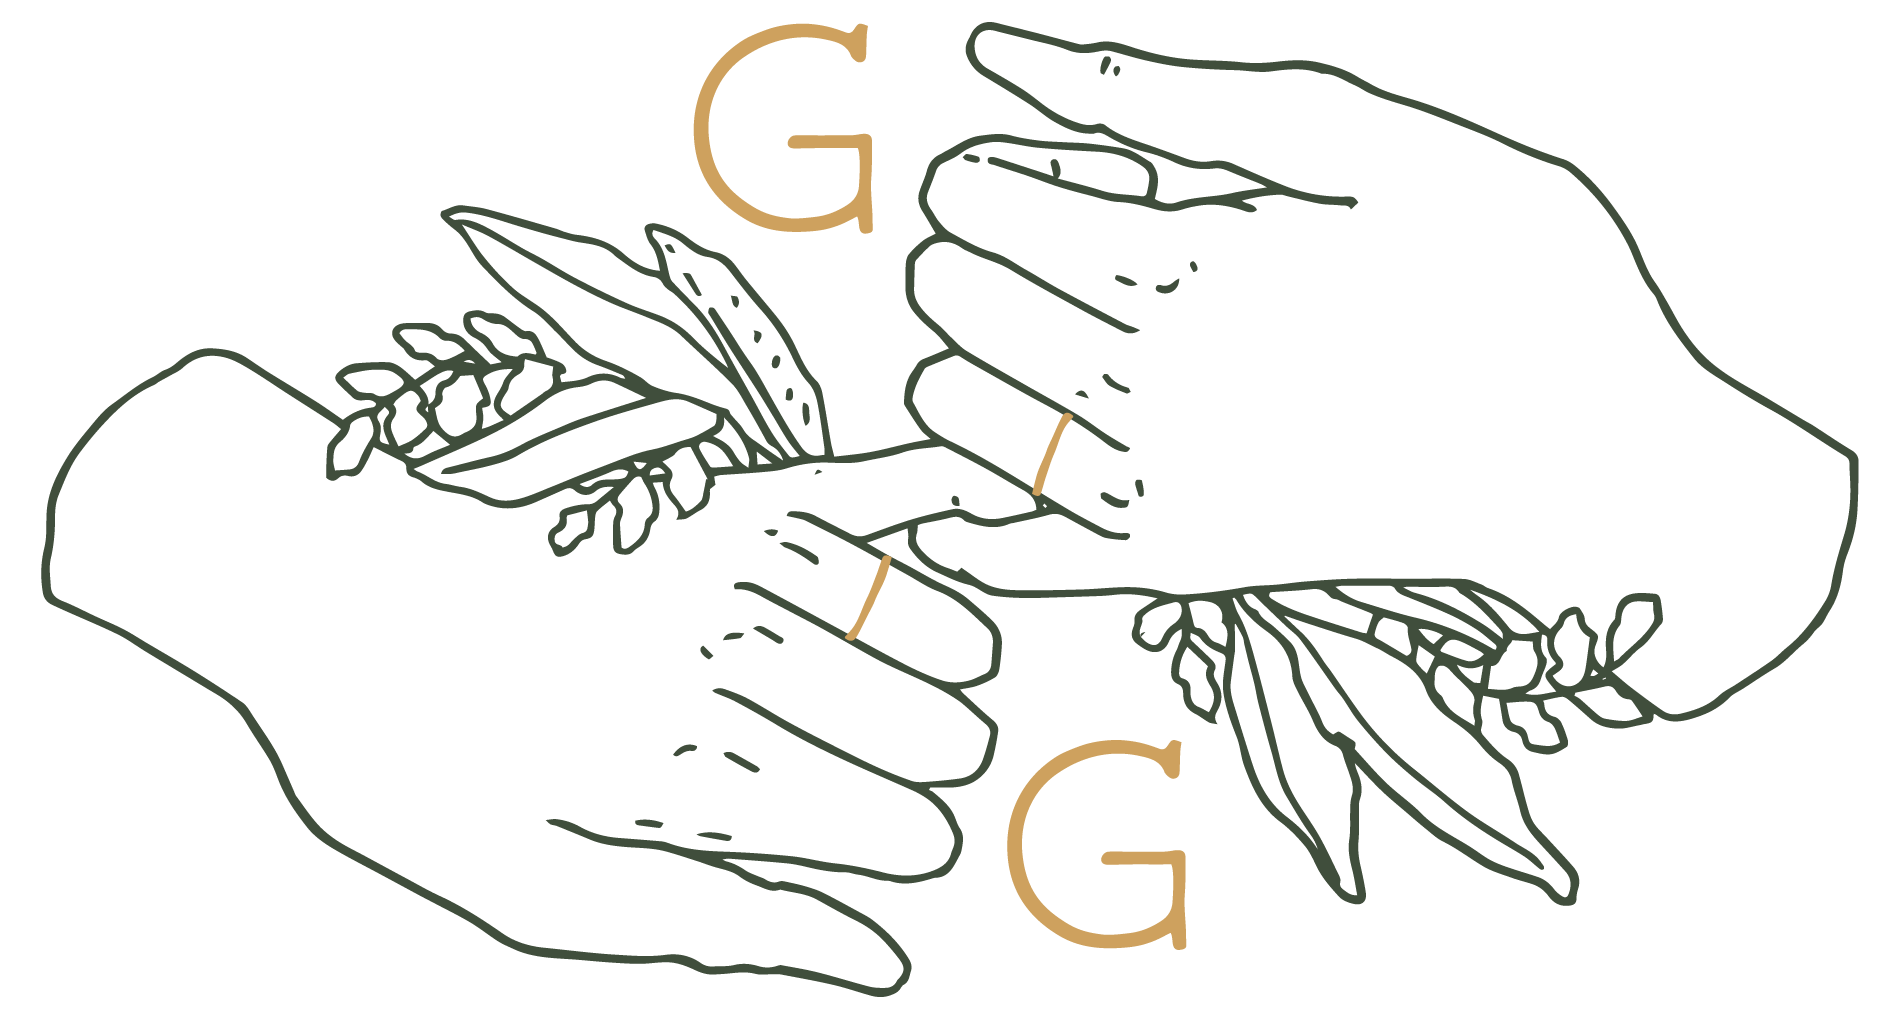 GG_Secondary Logo 2_Color.png